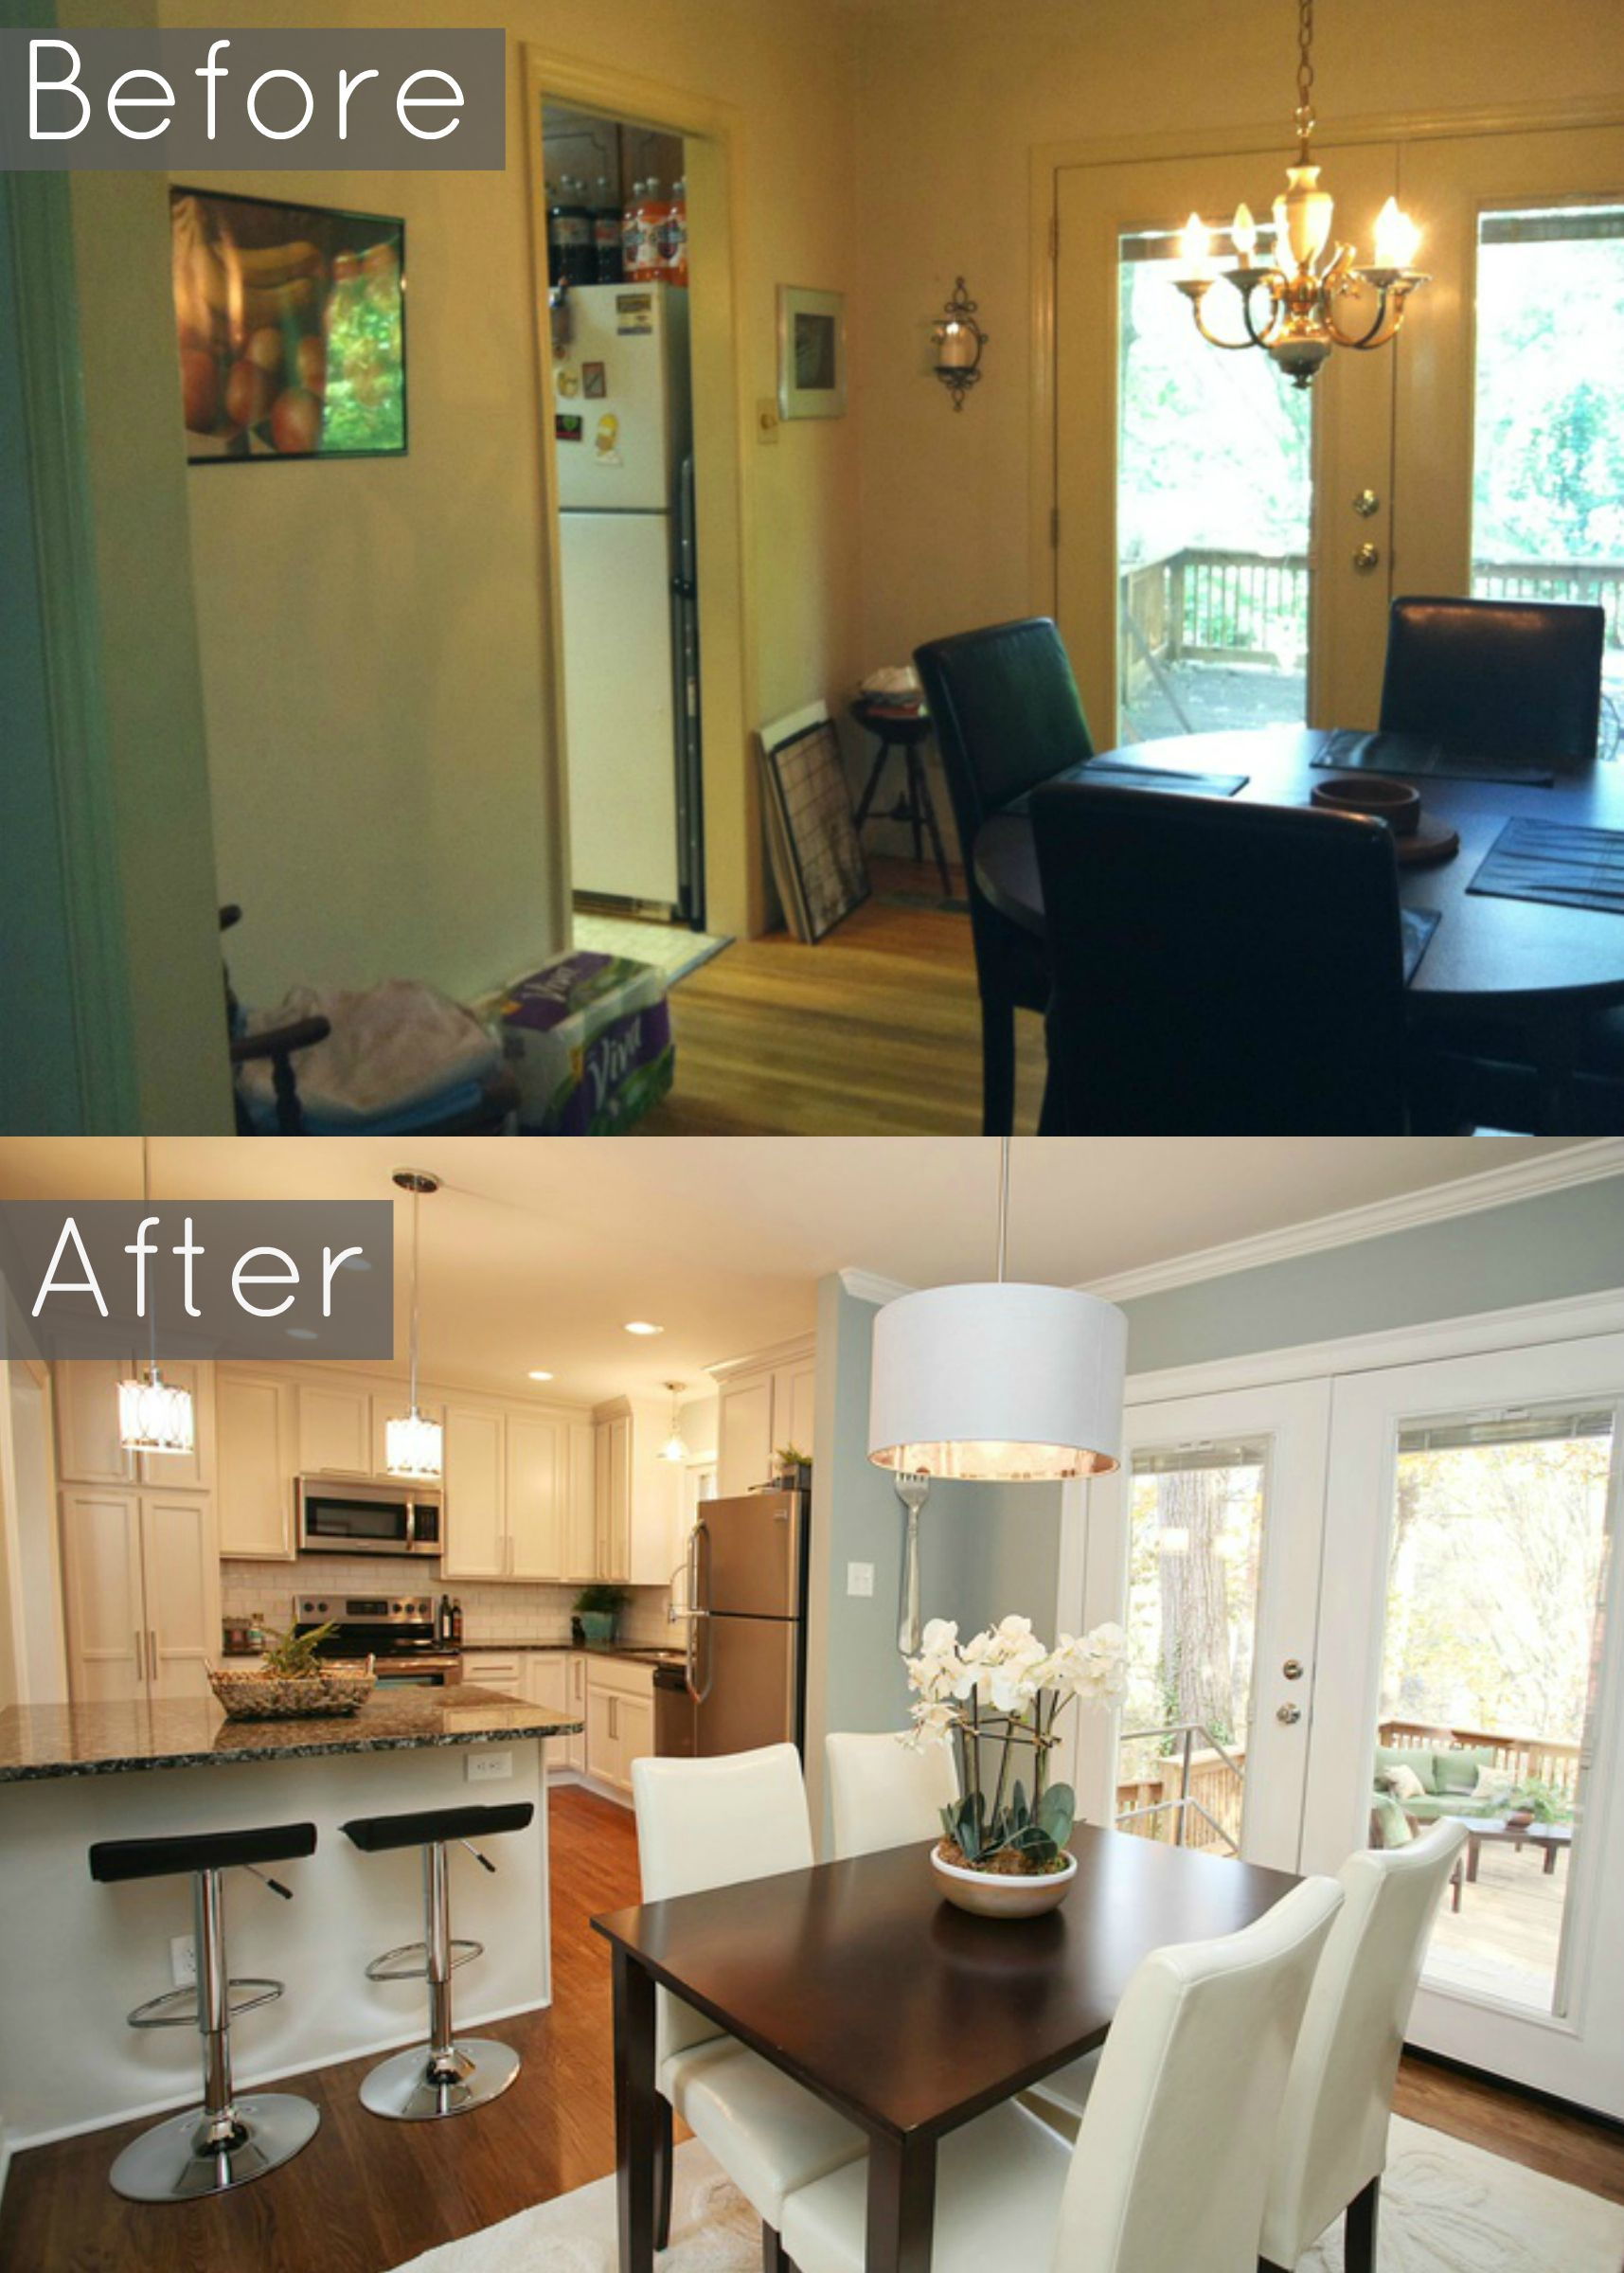 Before And After Pic We Removed Wall Into Dining Room And Created A Large Granite Breakfast Small Kitchen Renovations Kitchen Remodel Small Dining Room Design